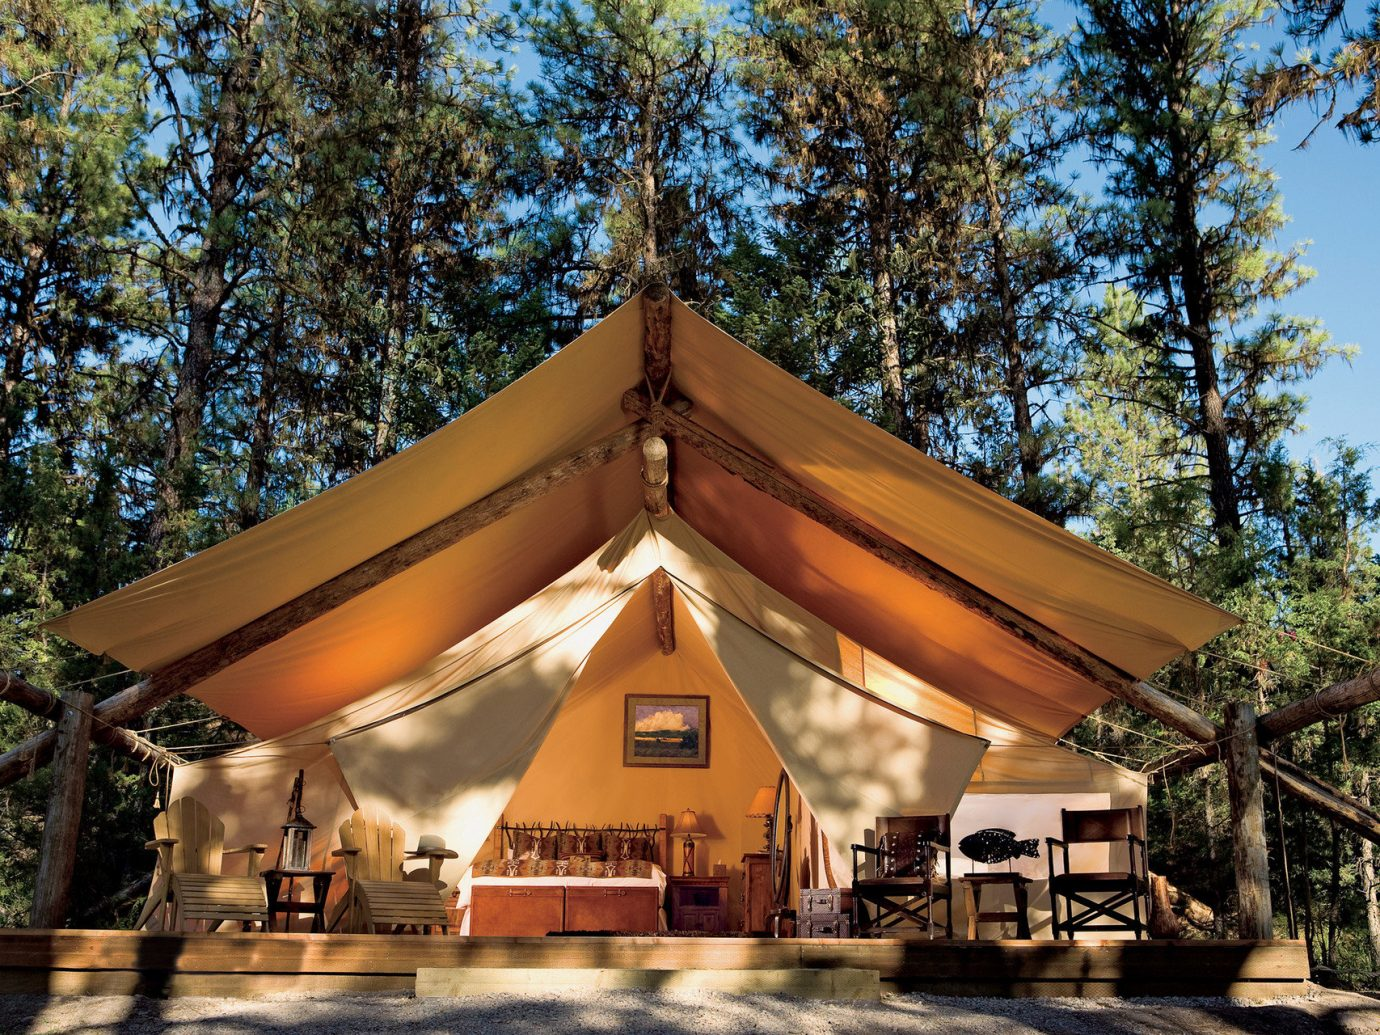 All-Inclusive Resorts Glamping Hotels Luxury Travel Trip Ideas tree outdoor temple shinto shrine tent shrine estate place of worship pavilion outdoor object wooded